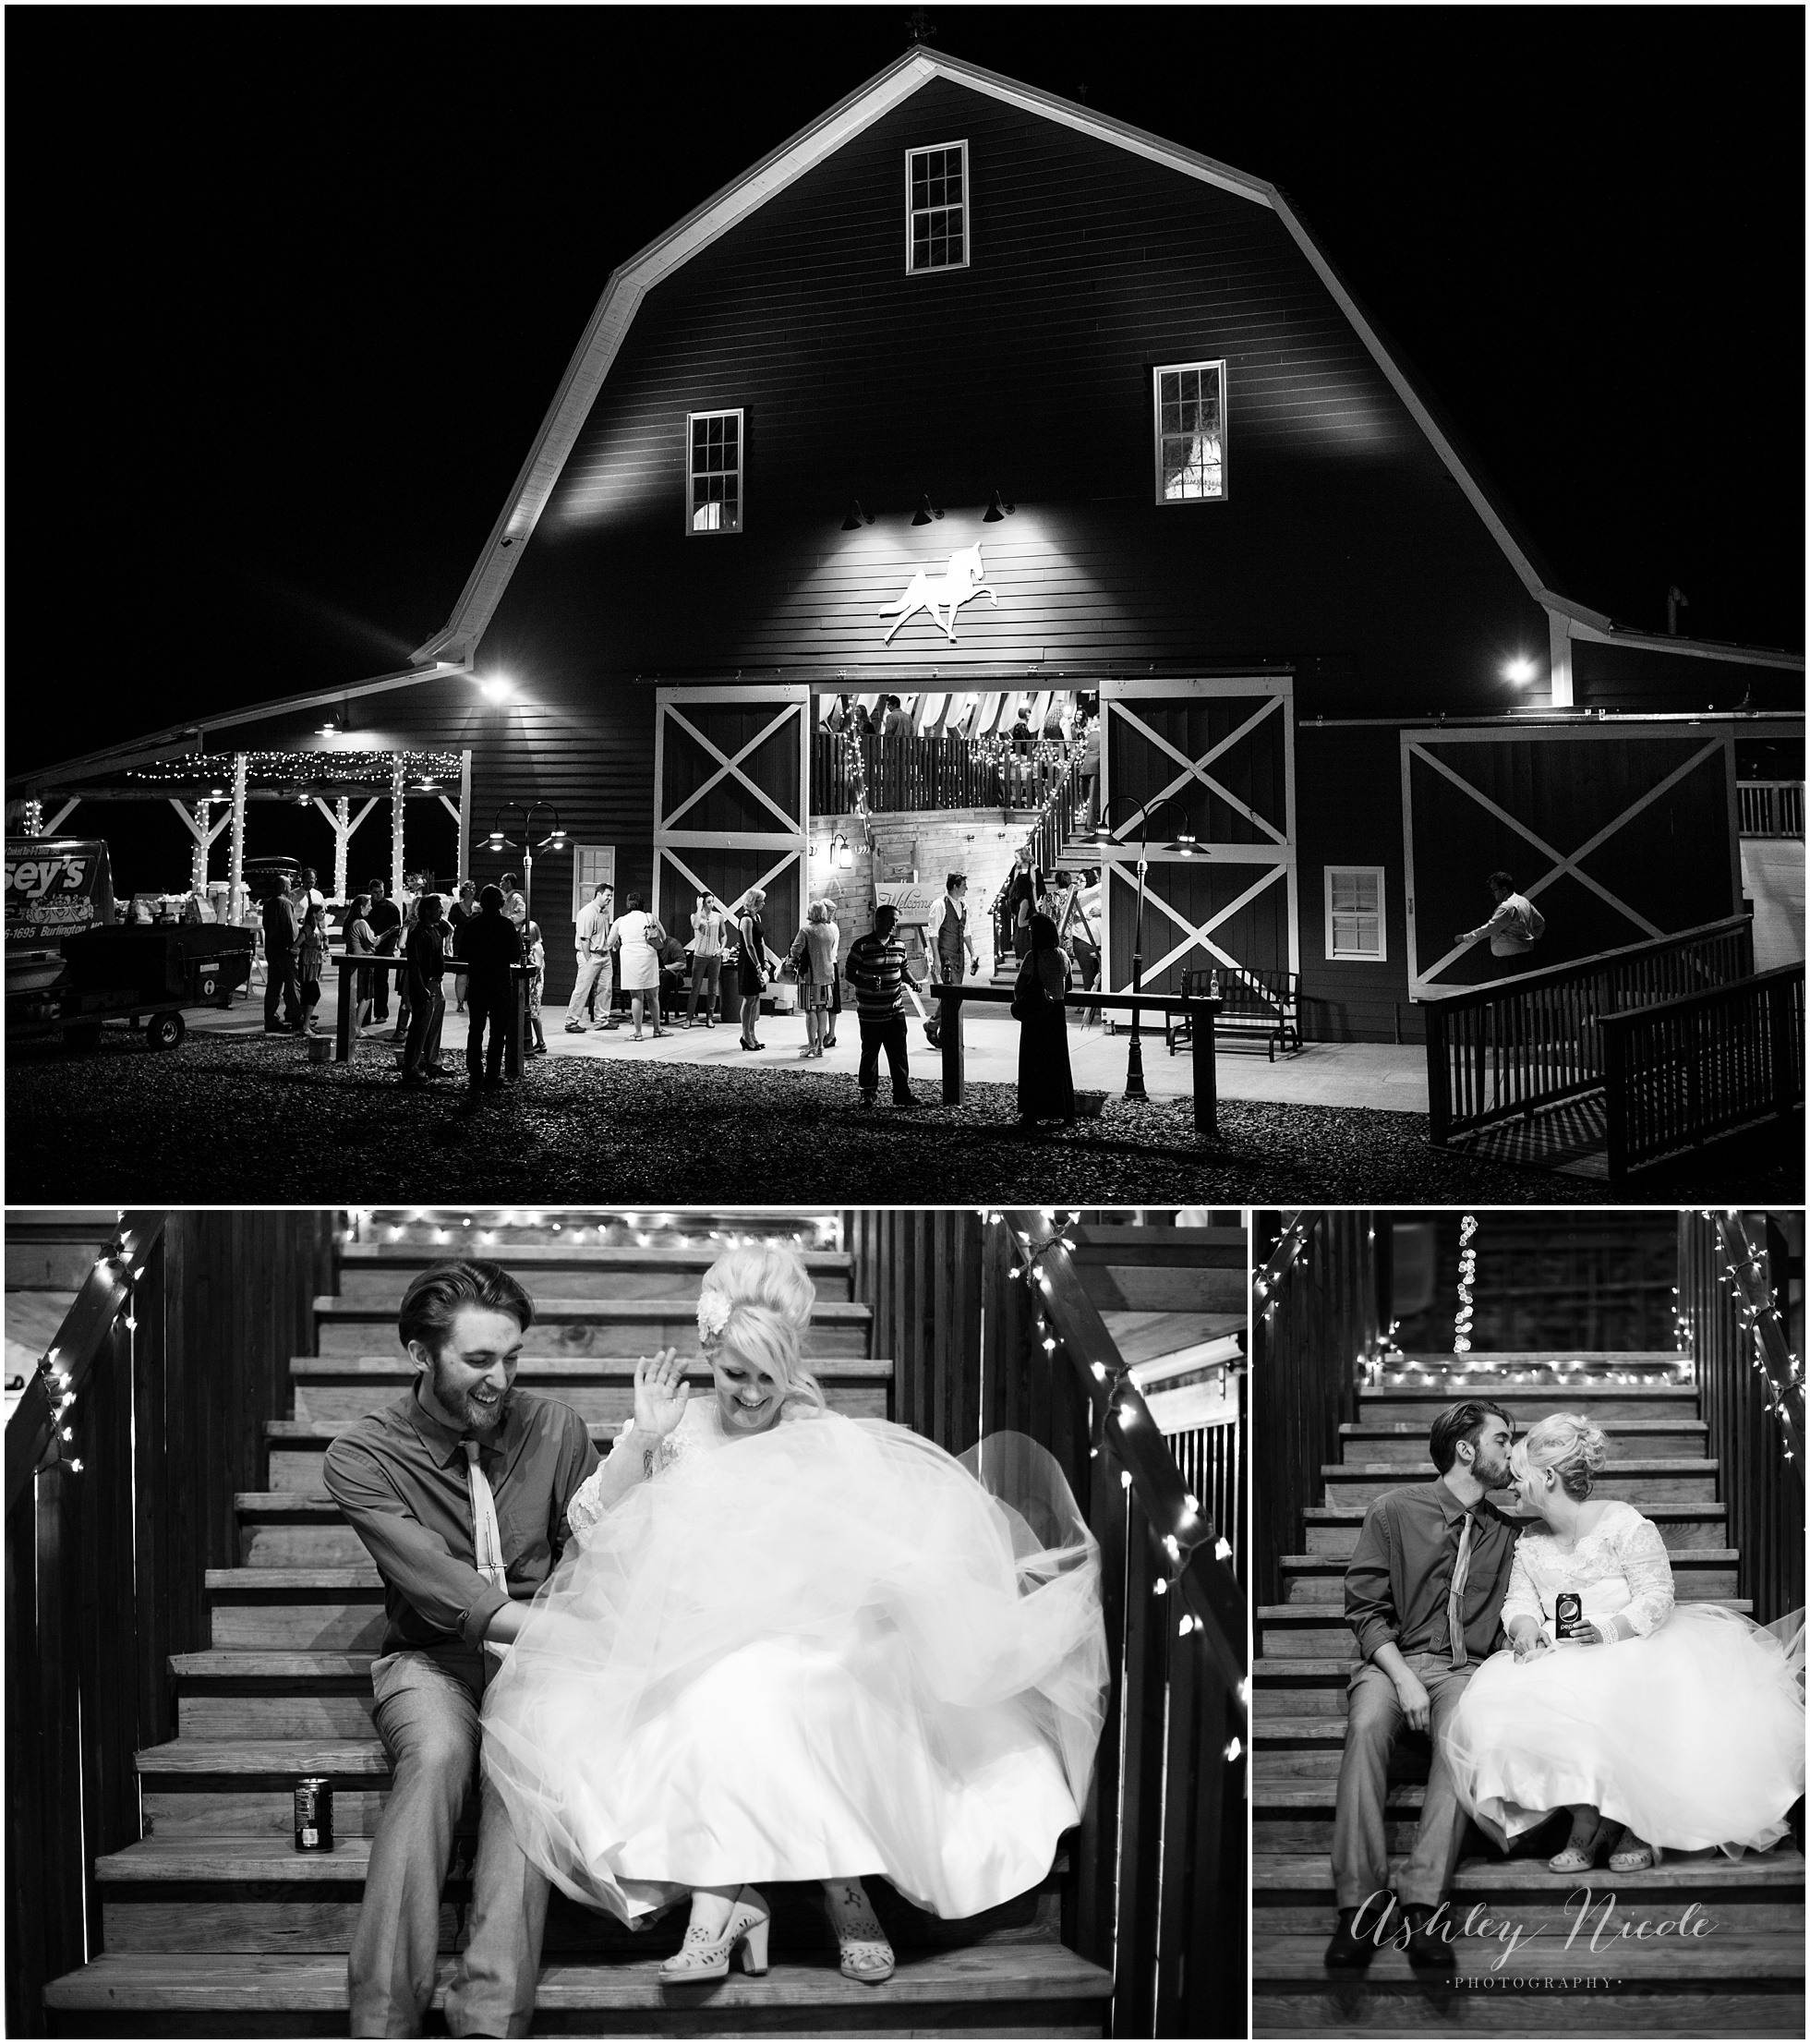 Vintage Wedding Dresses Raleigh Nc: A Vintage Small-town Barn Wedding